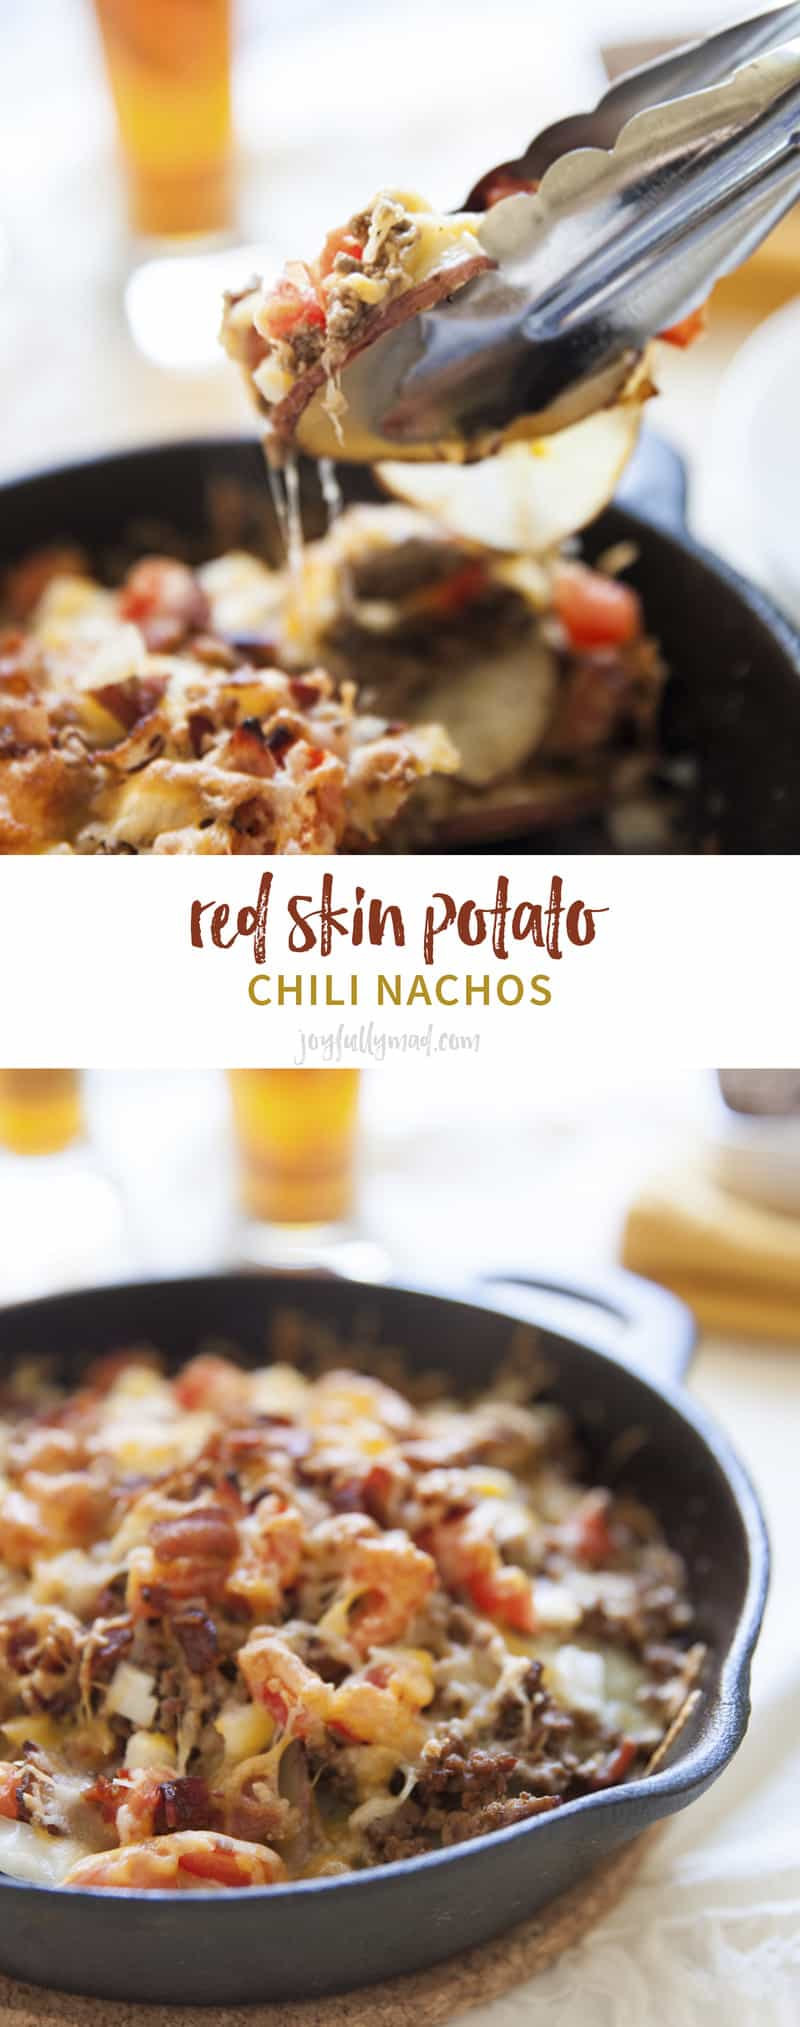 Red skin potato | red skin potato recipe | football food | superbowl recipes | superbowl food | superbowl ideas | nacho recipes | potato nachos | party food | beer food